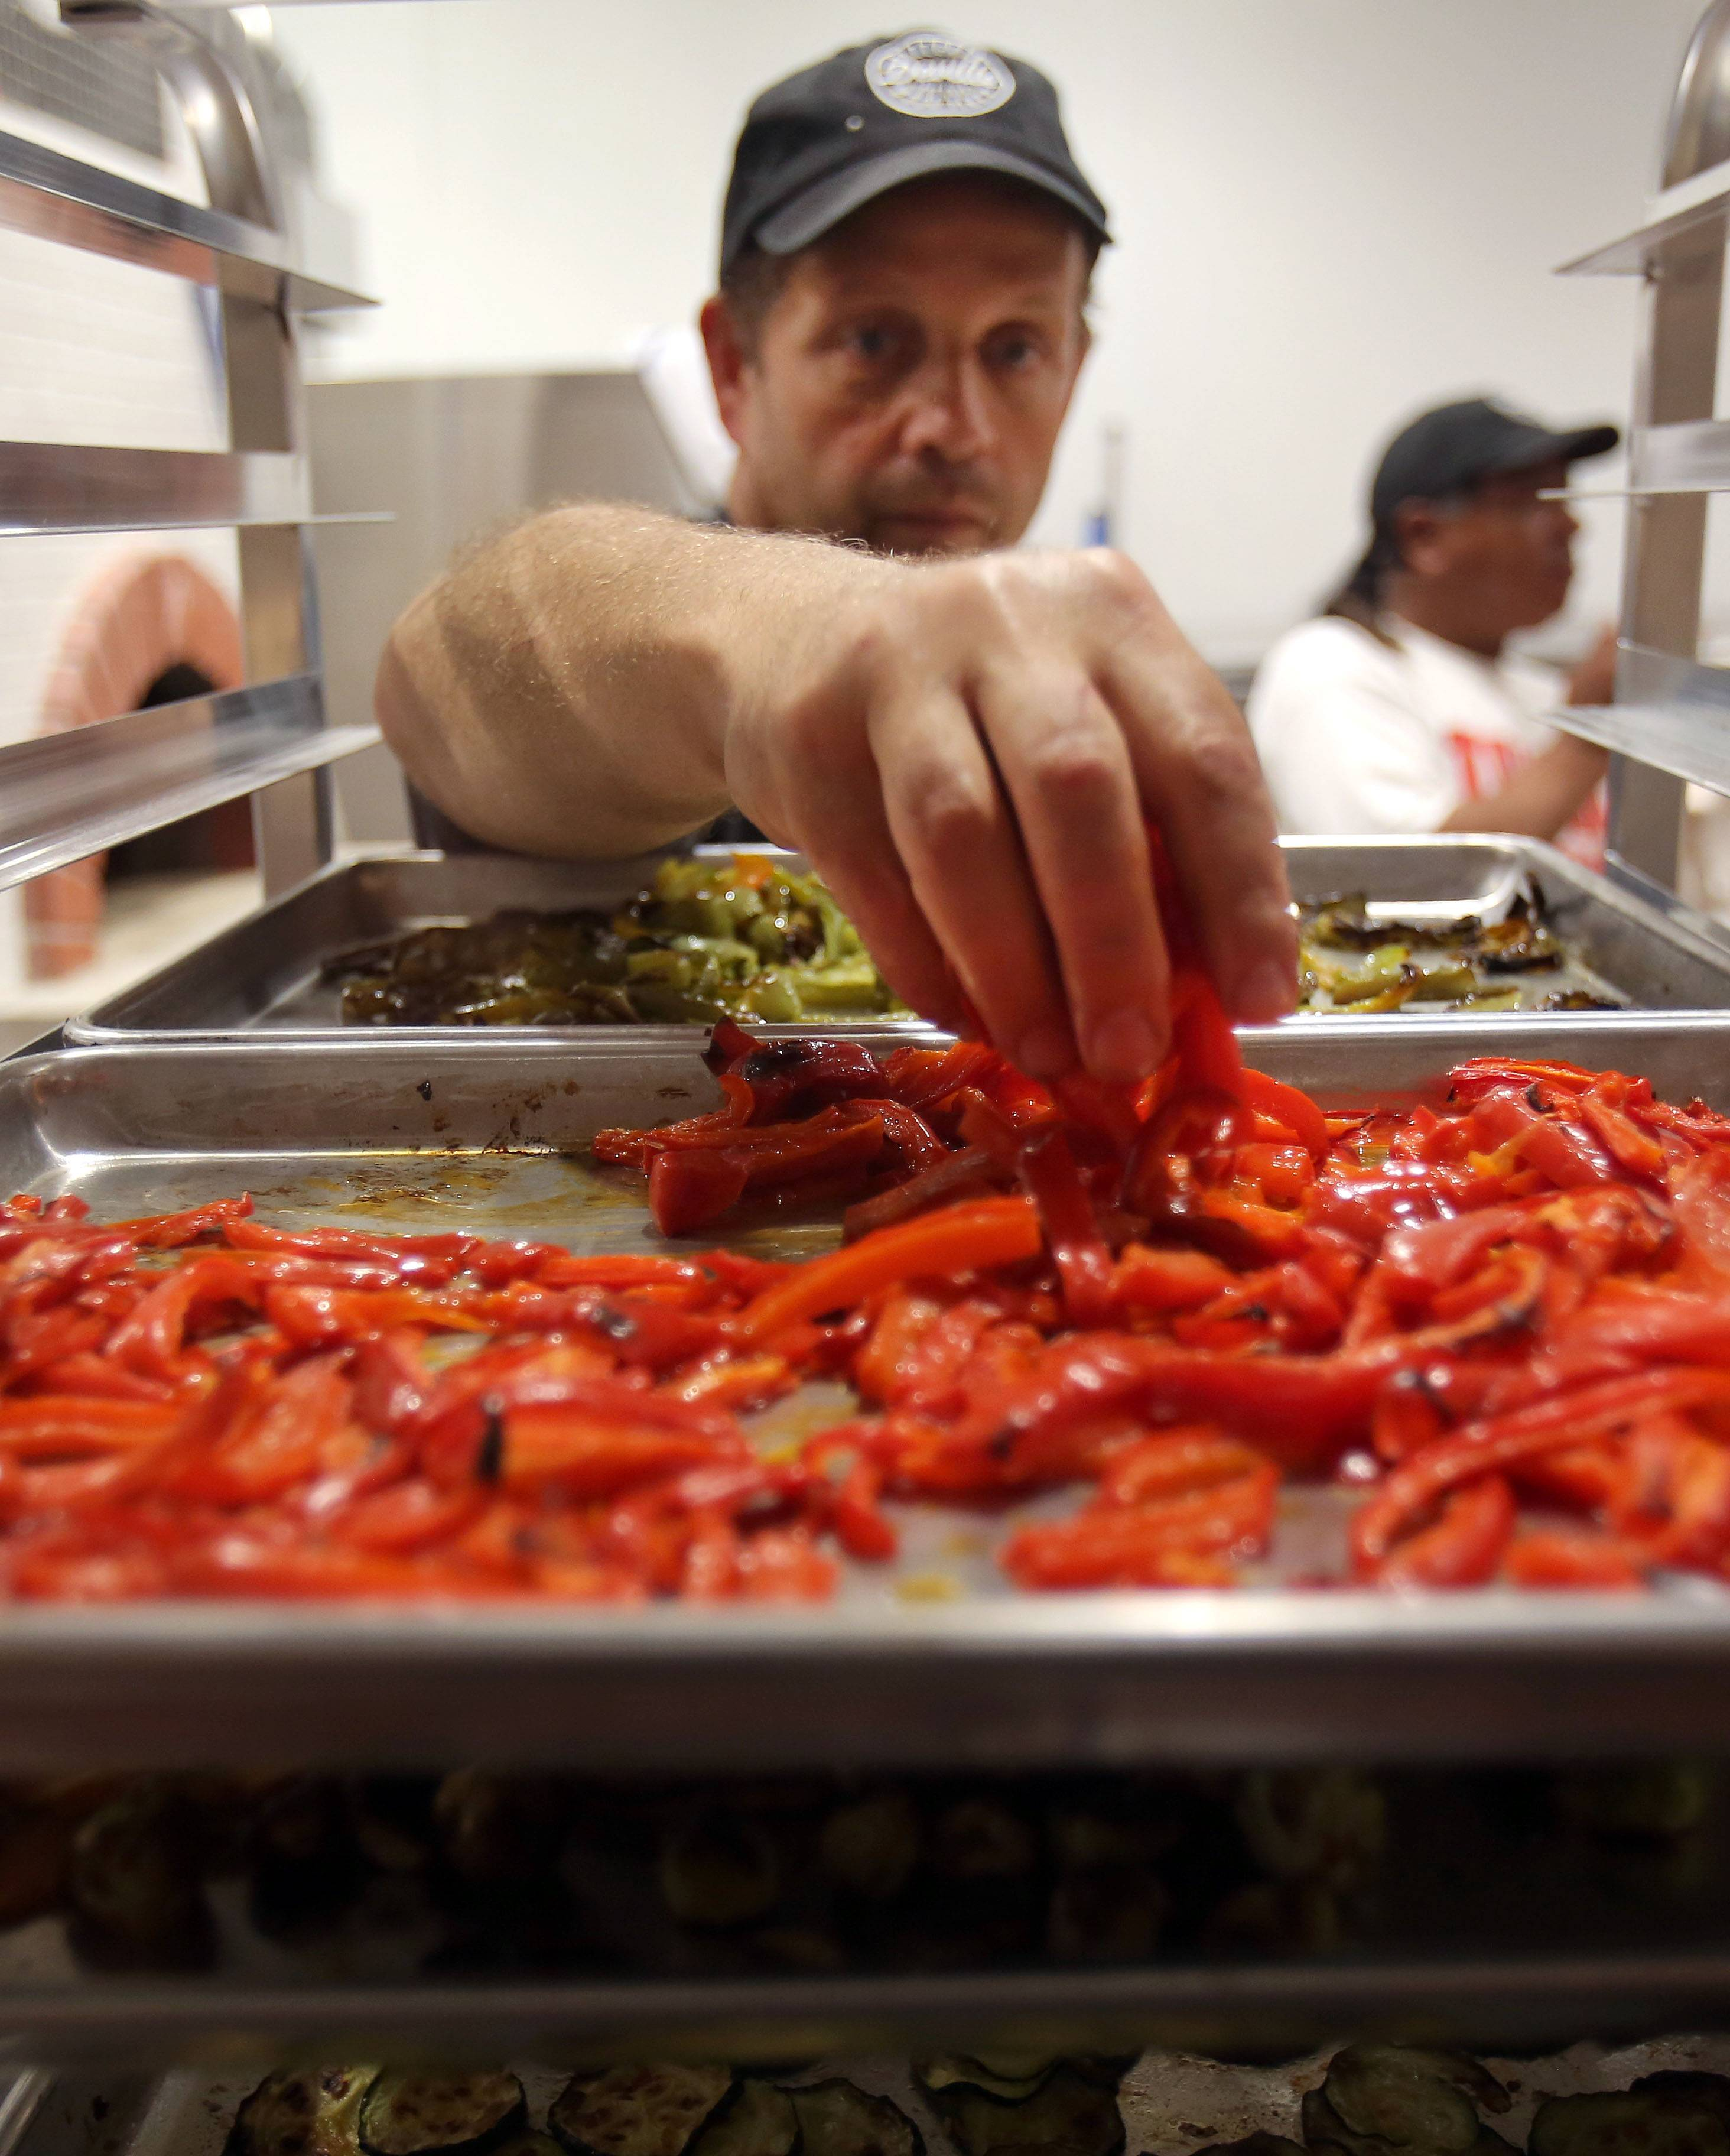 John Durning takes some roasted red peppers to make a pizza at his new Pizzeria DeVille in Libertyville.